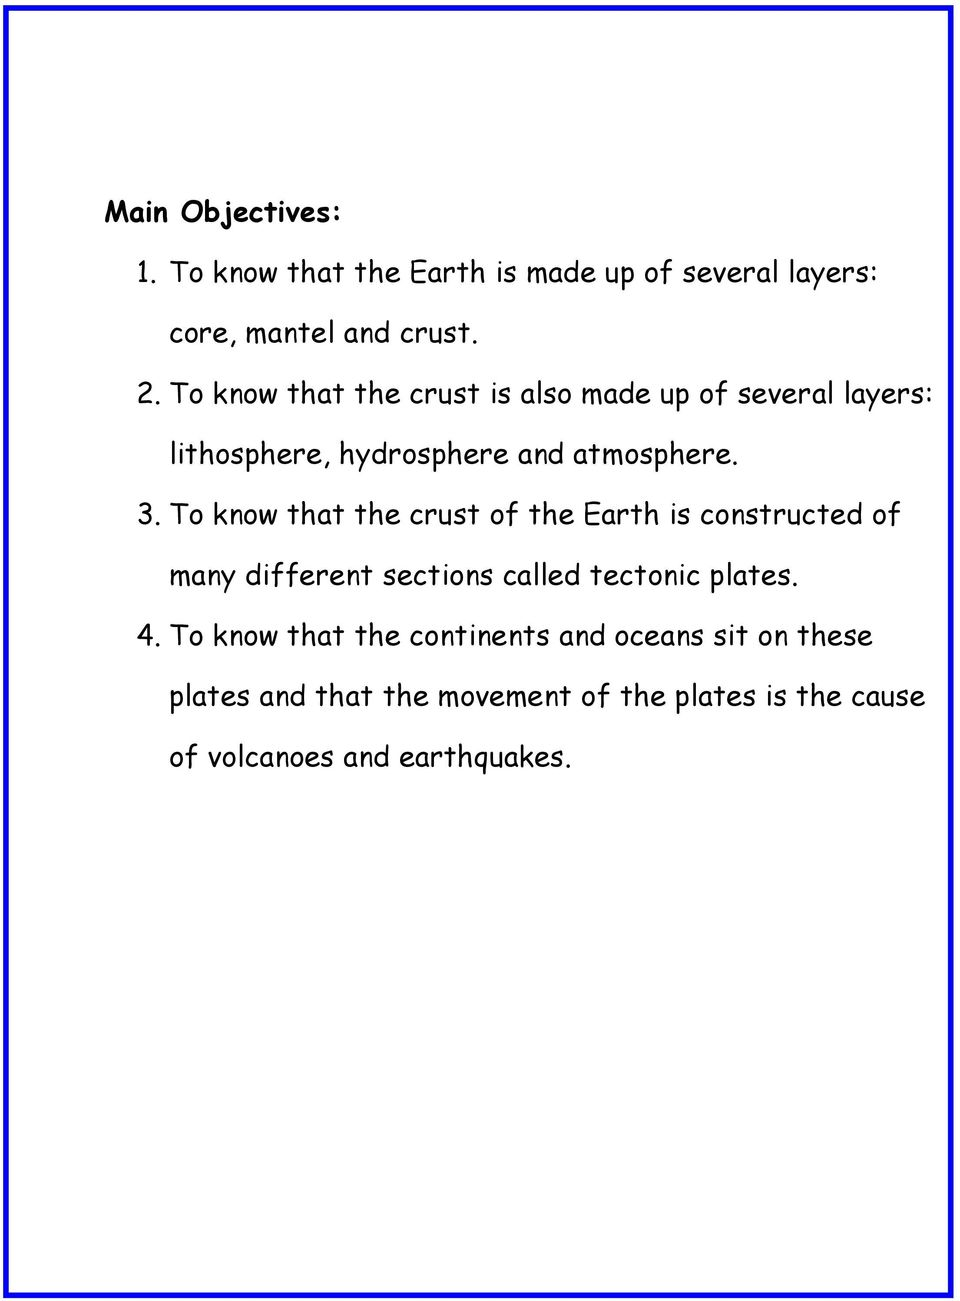 To know that the crust of the Earth is constructed of many different sections called tectonic plates. 4.